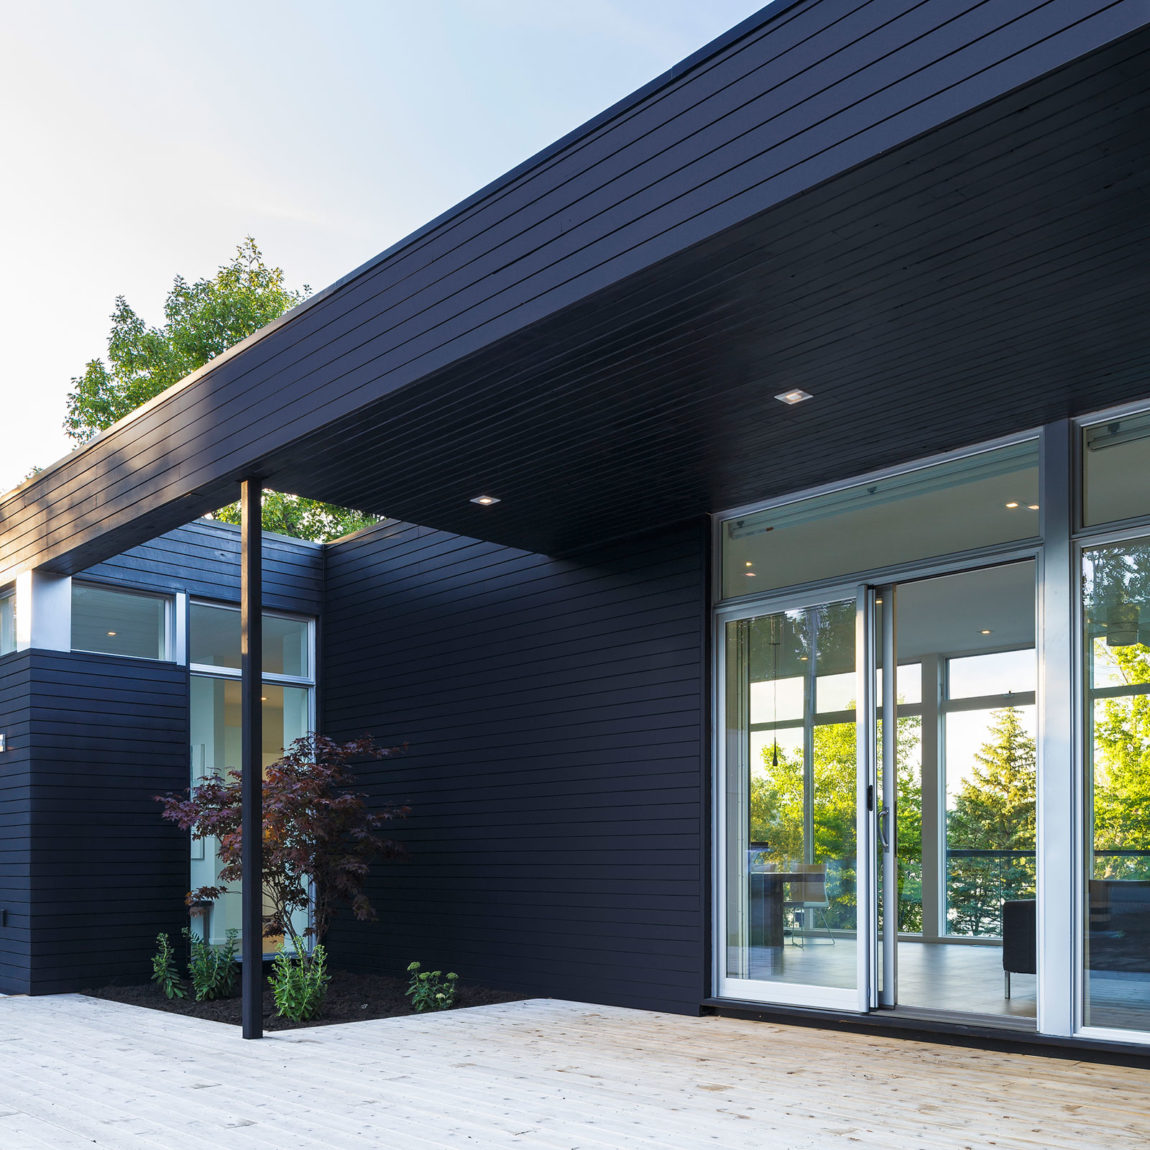 Dunrobin Shore by Christopher Simmonds Architect (3)